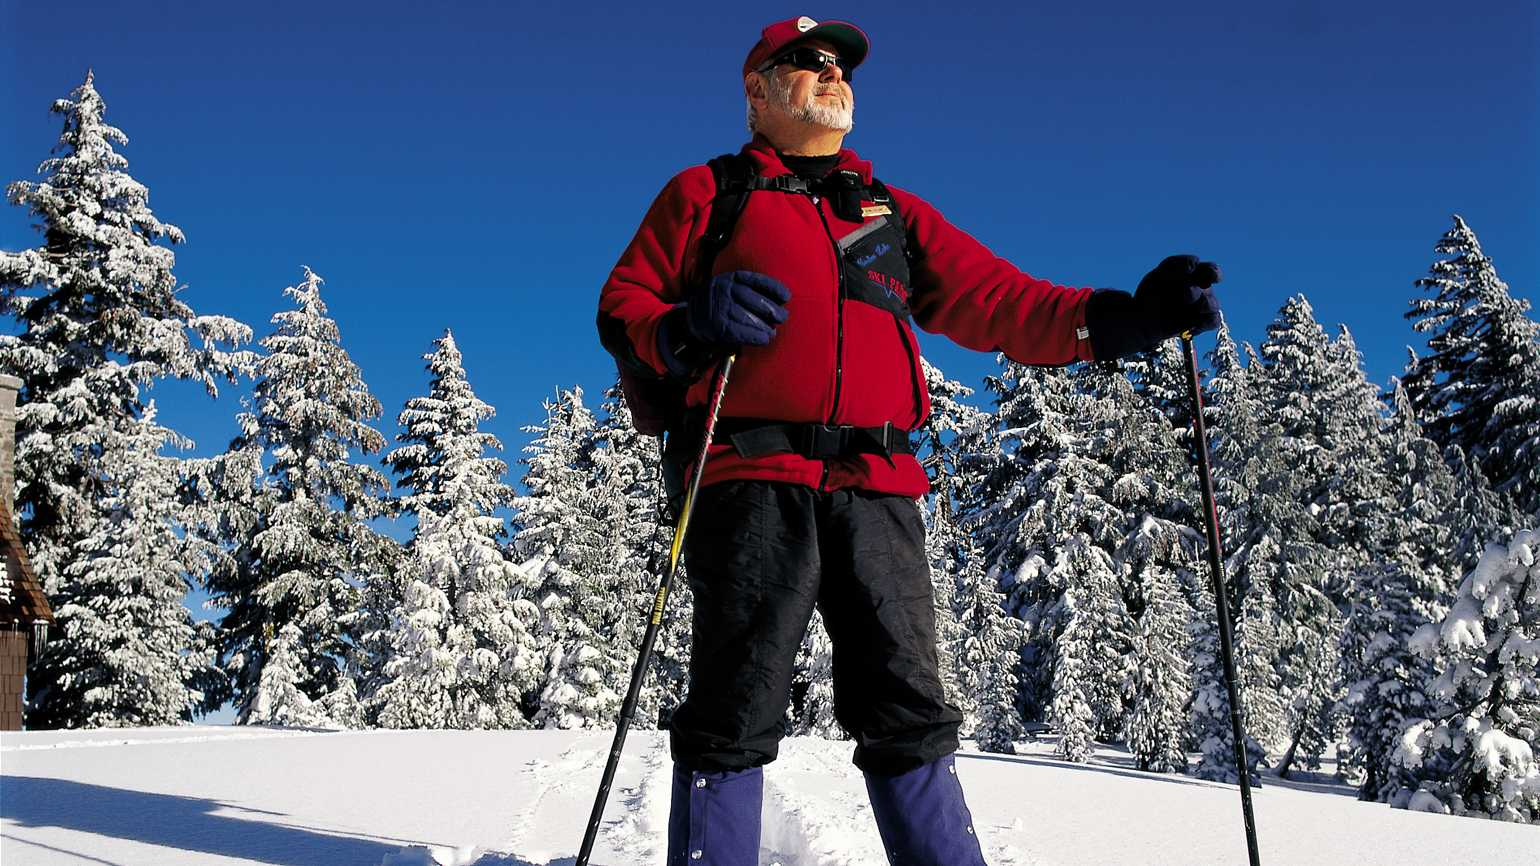 Bill skiing on the slopes.